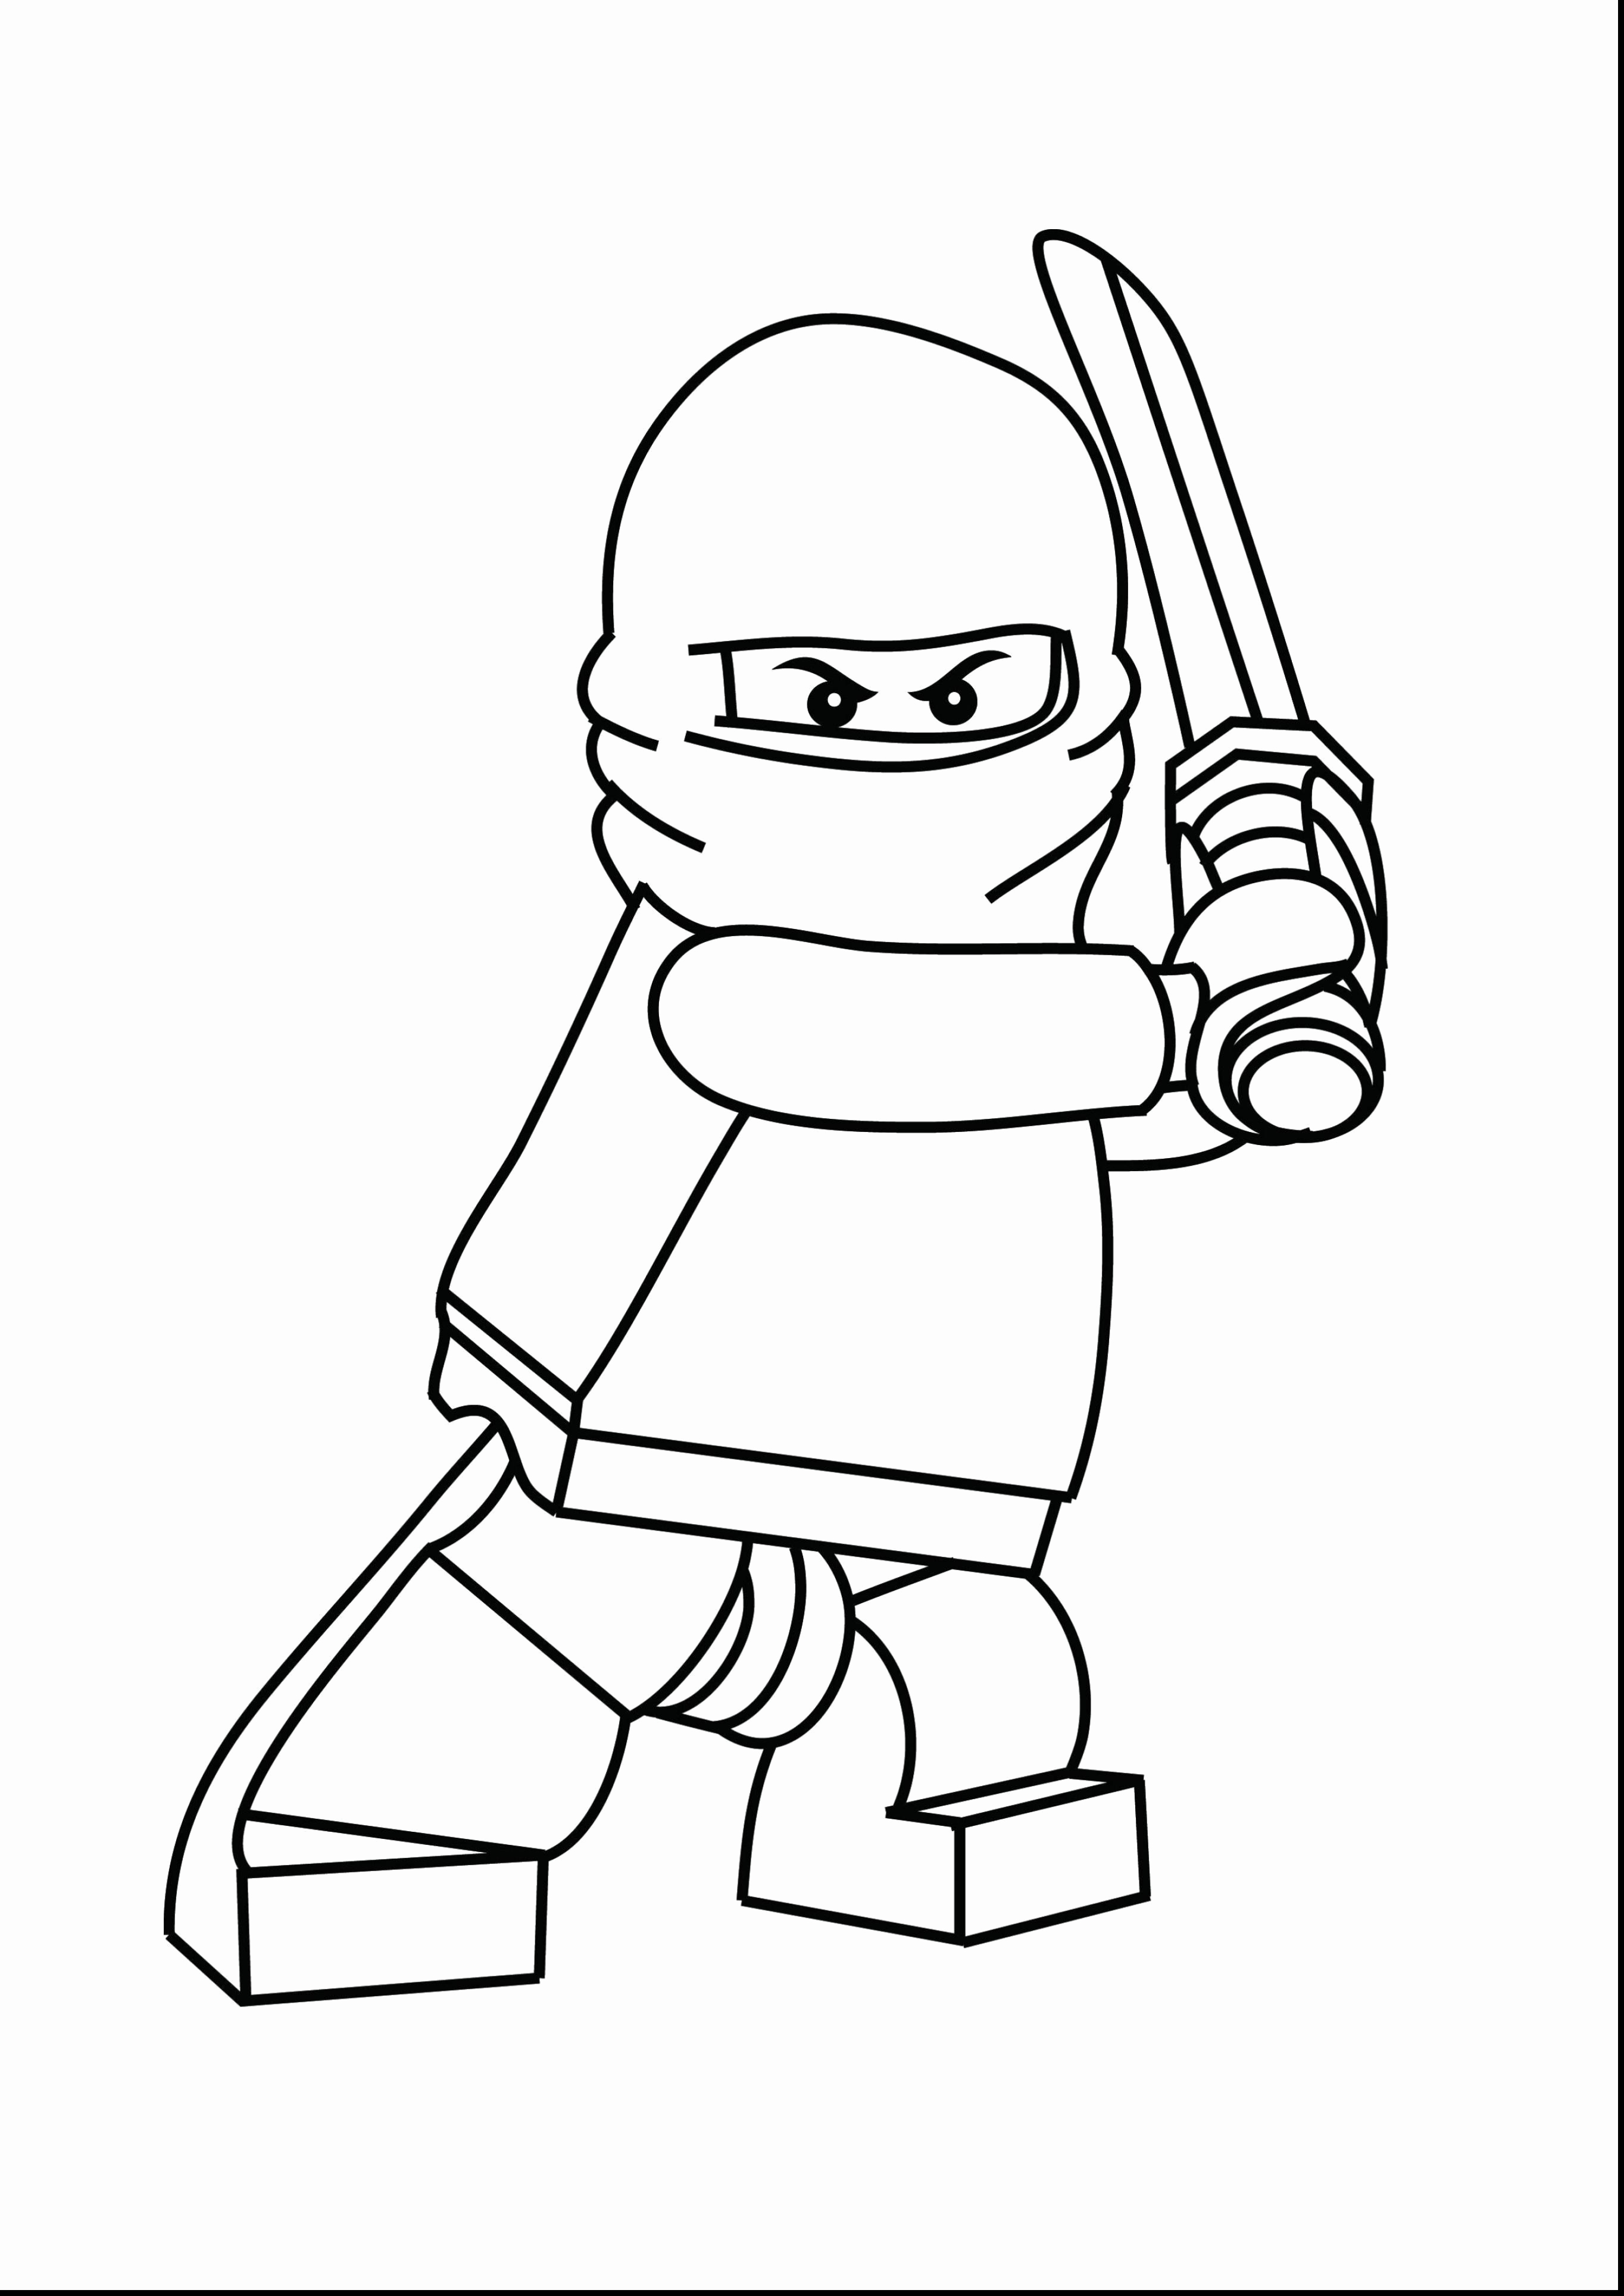 lego power rangers coloring pages lego coloring pages dino charge gold ranger power coloring pages lego power coloring rangers